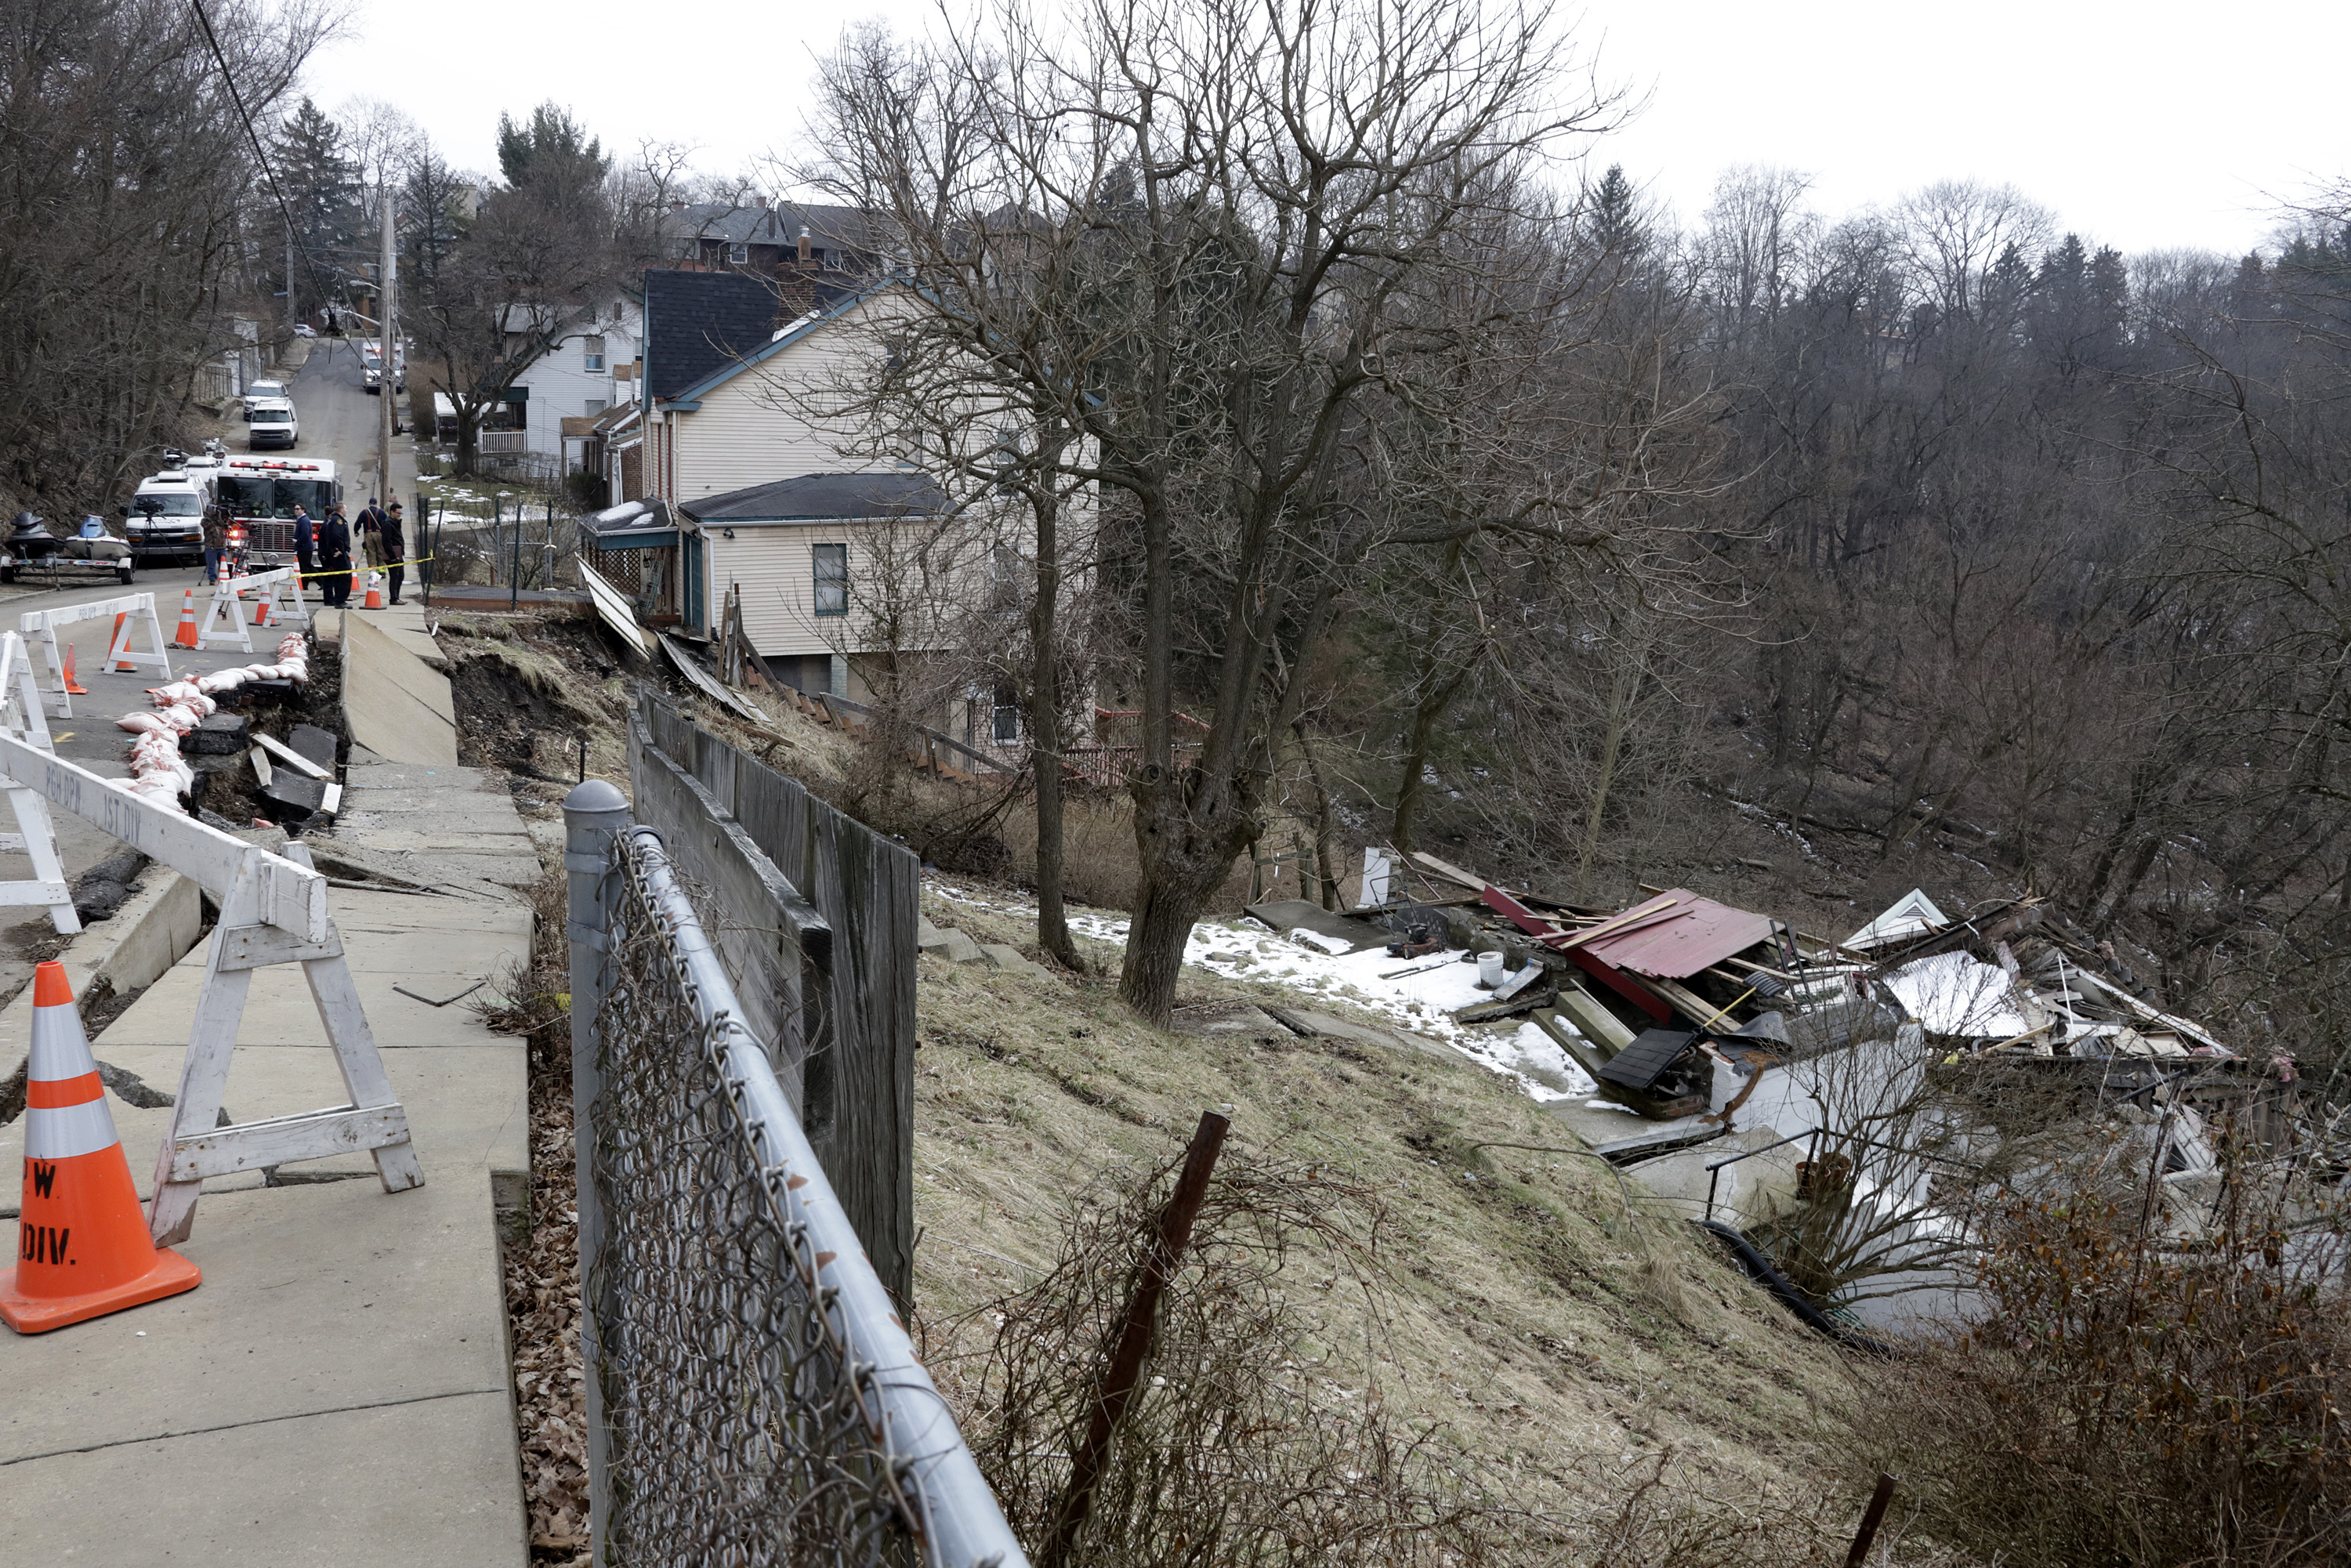 Pittsburgh Public Safety workers inspect a house that collapsed due to a landslide